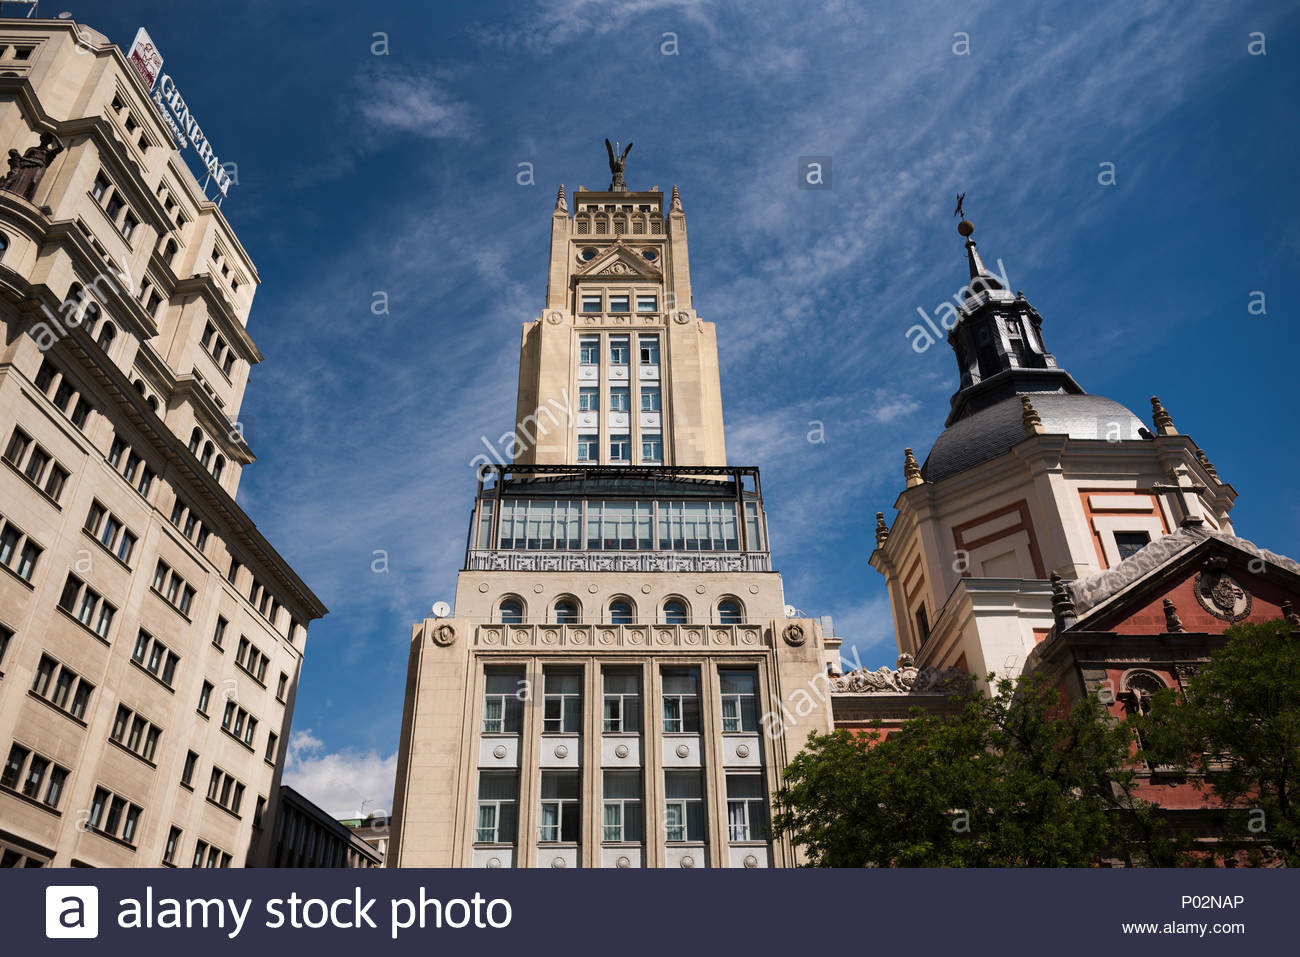 Buildings around Madrid. Spain. 12/06/2018. Differents types of architecture and examples of buildings on the city. - Stock Image